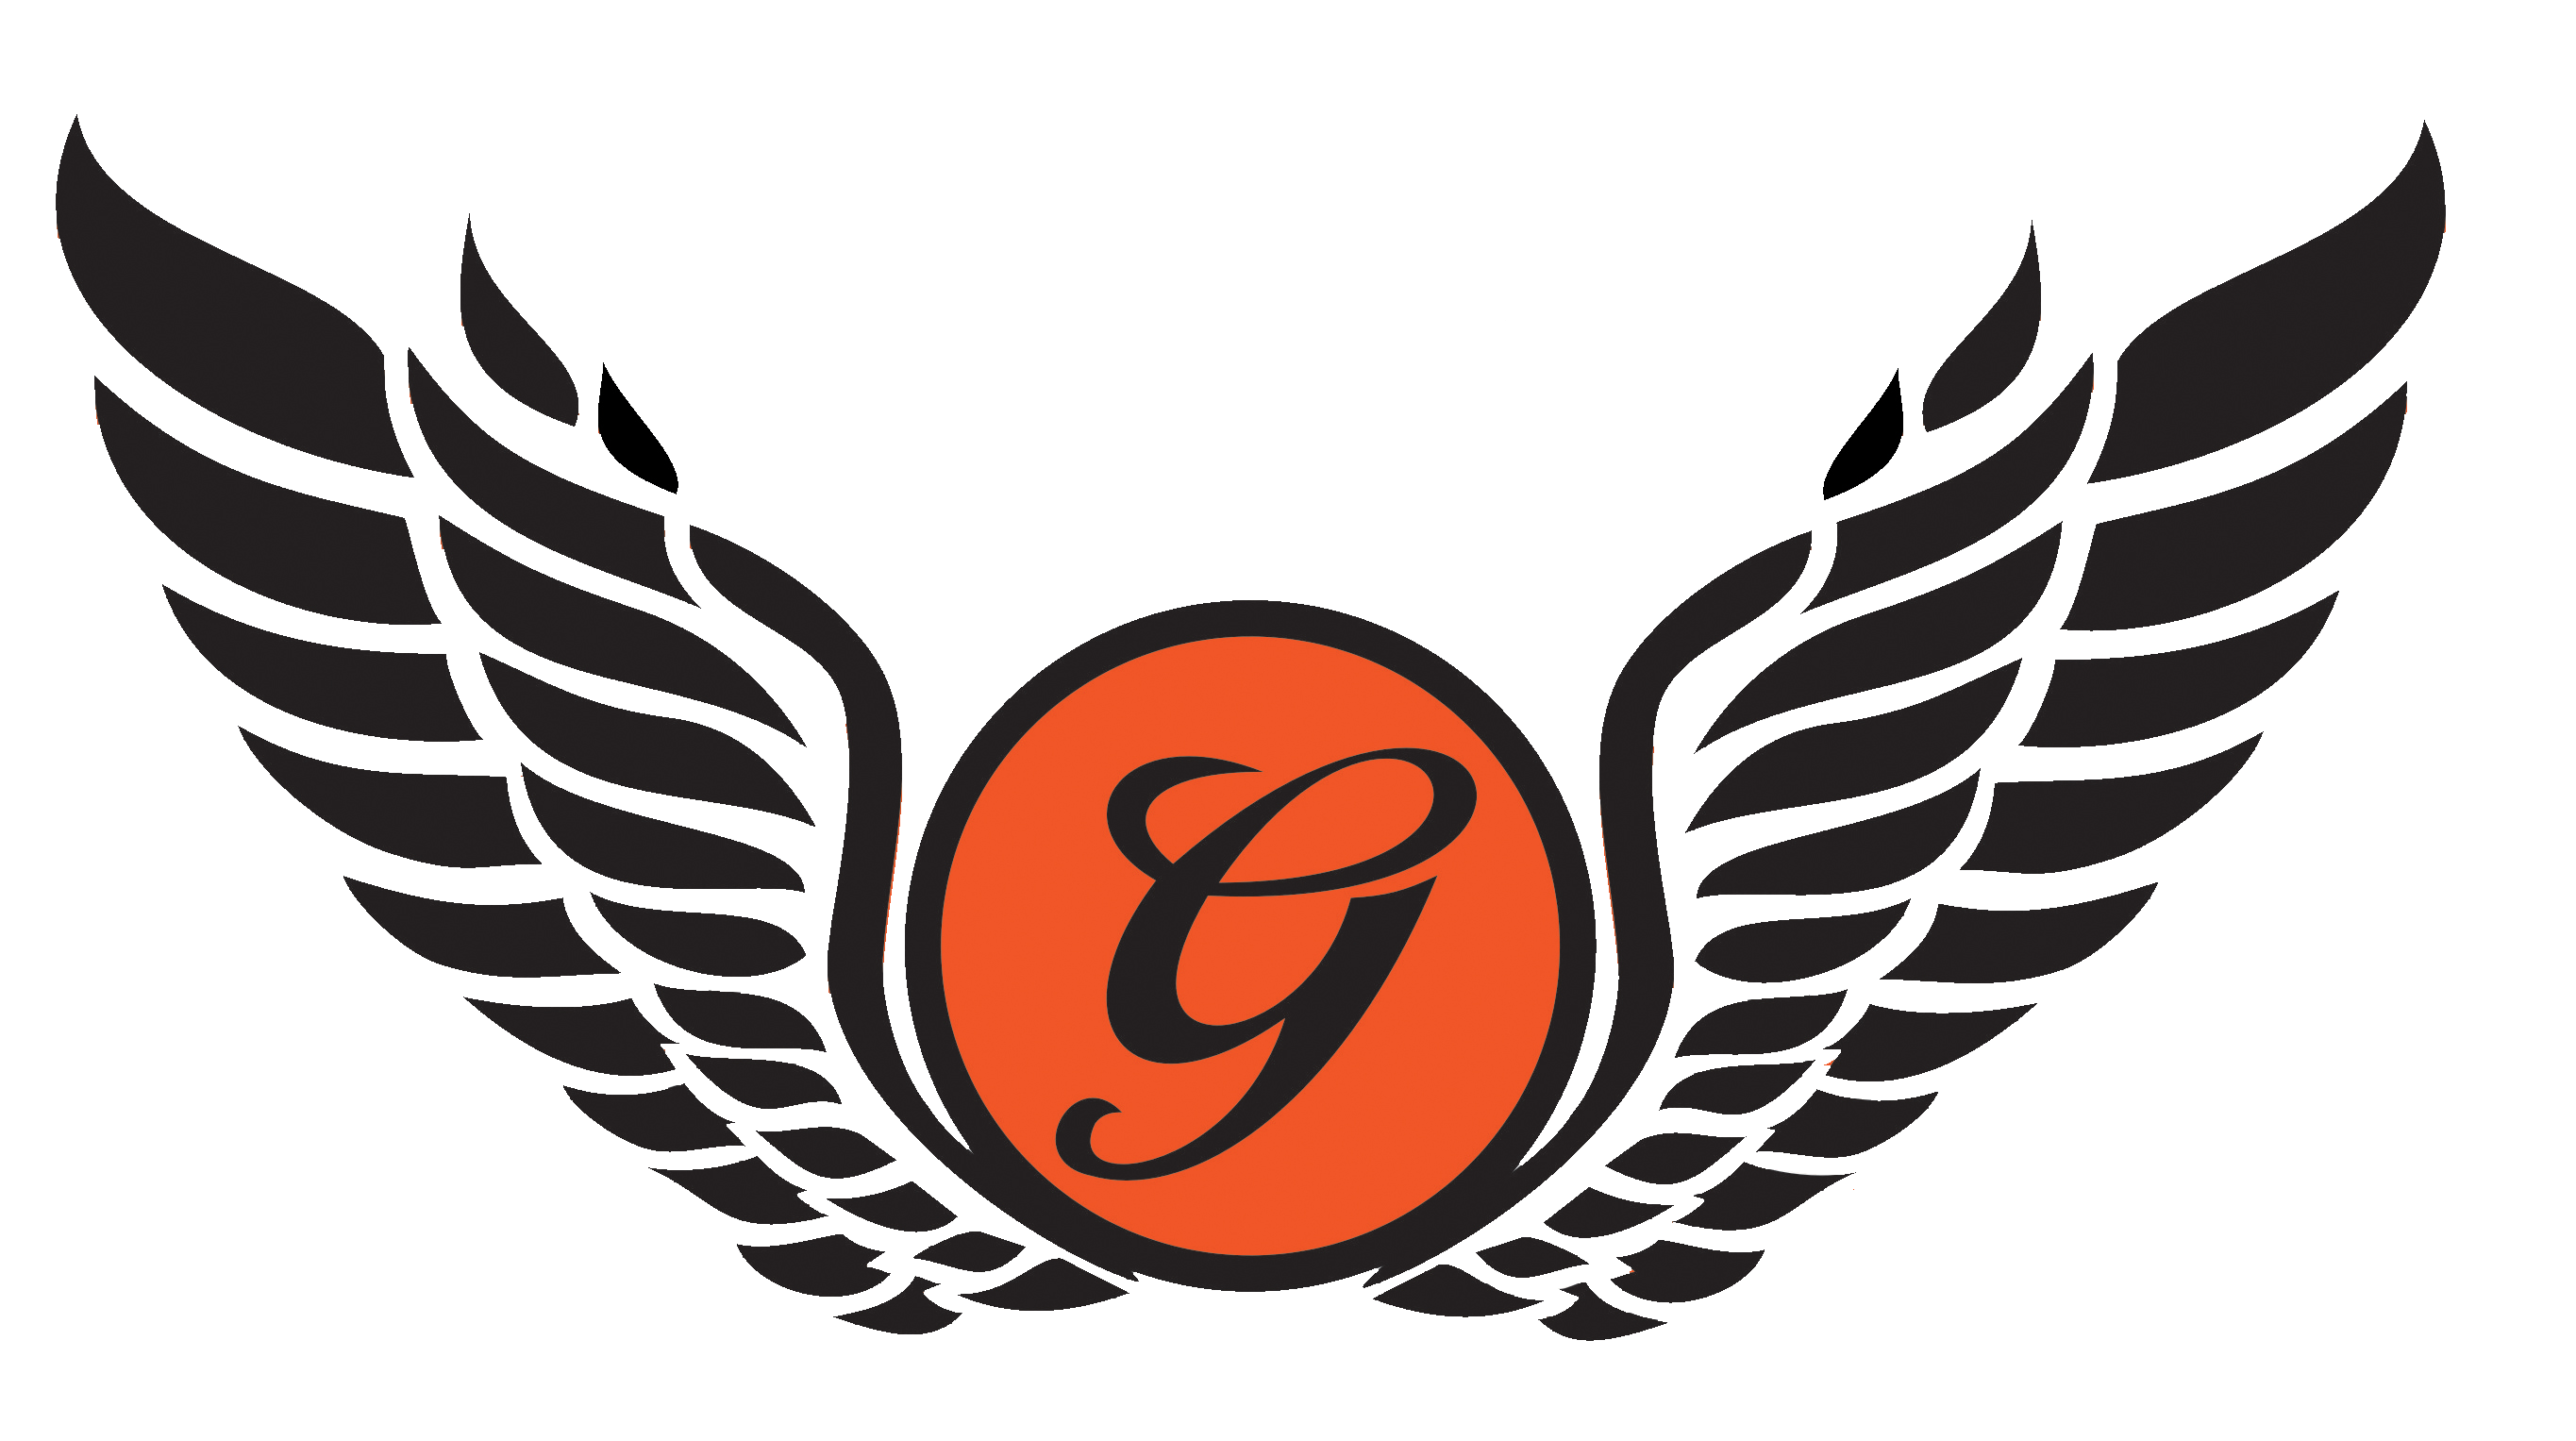 Wheel clipart winged. Wings logo png free